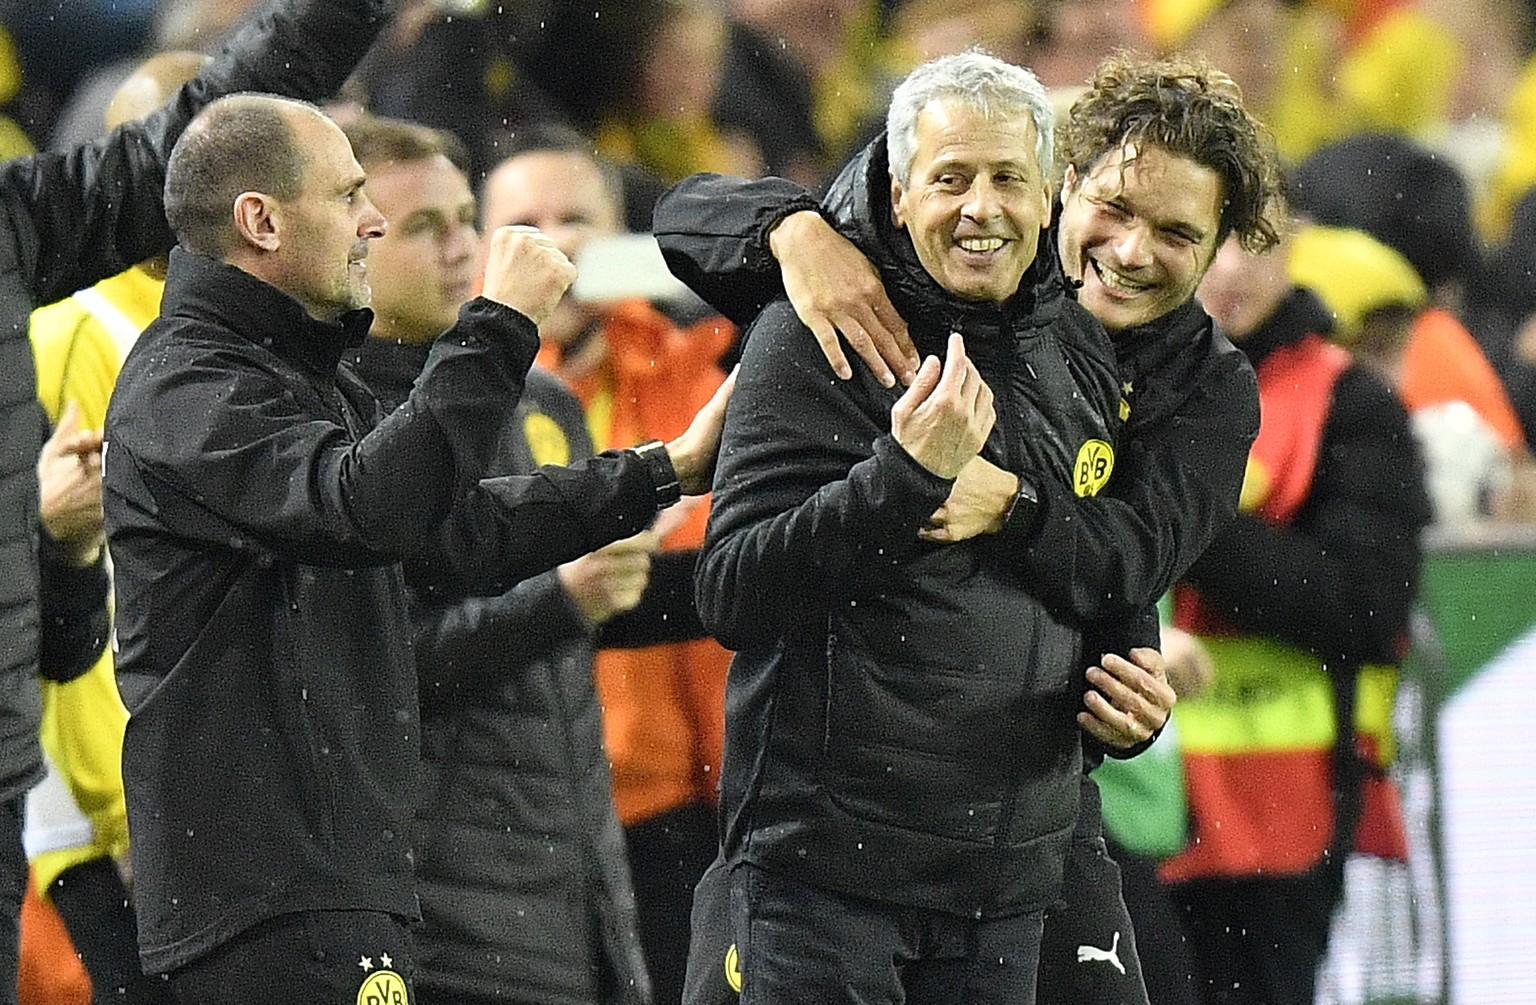 Dortmund coach Lucien Favre, celebrates with the bench after the German Bundesliga soccer match between Borussia Dortmund and Bayern Munich in Dortmund, Germany, Saturday, Nov. 10, 2018. Dortmund defeated Bayern with 3-2. (AP Photo/Martin Meissner)